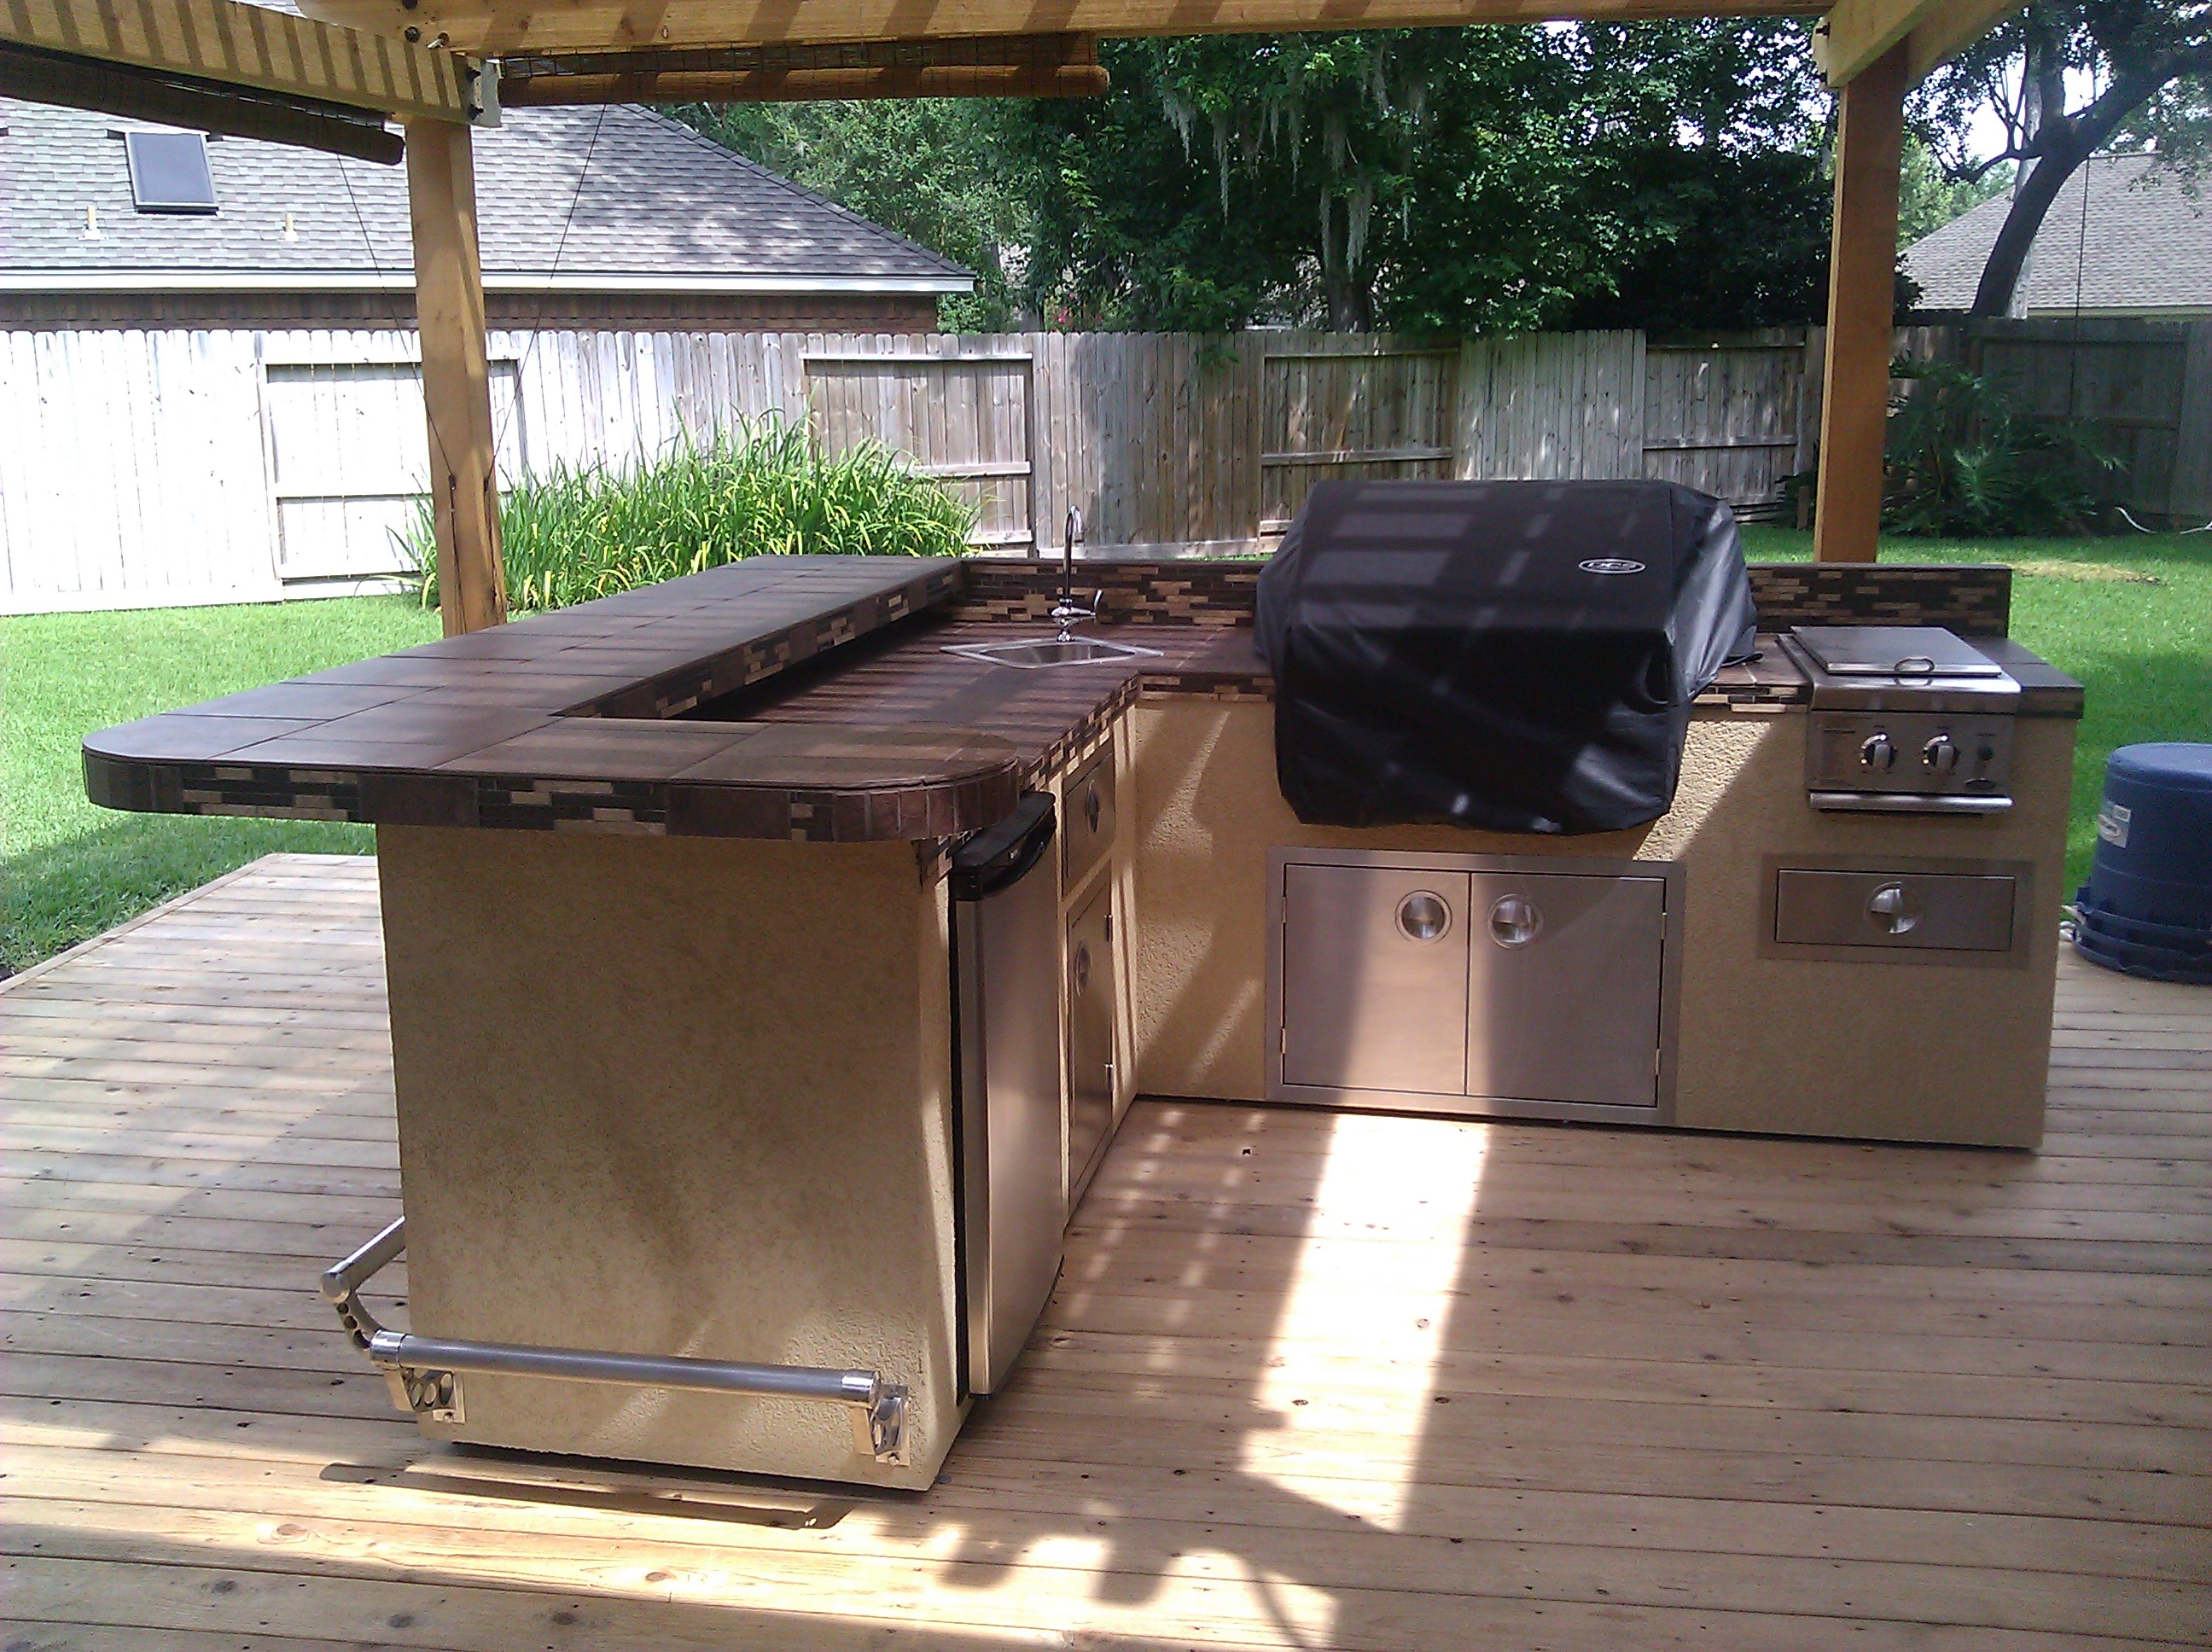 outdoor kitchen equipment pellet smoker outdoor kitchen equipment houston gas grills fireplaces cooking equipment galveston friendswood grills